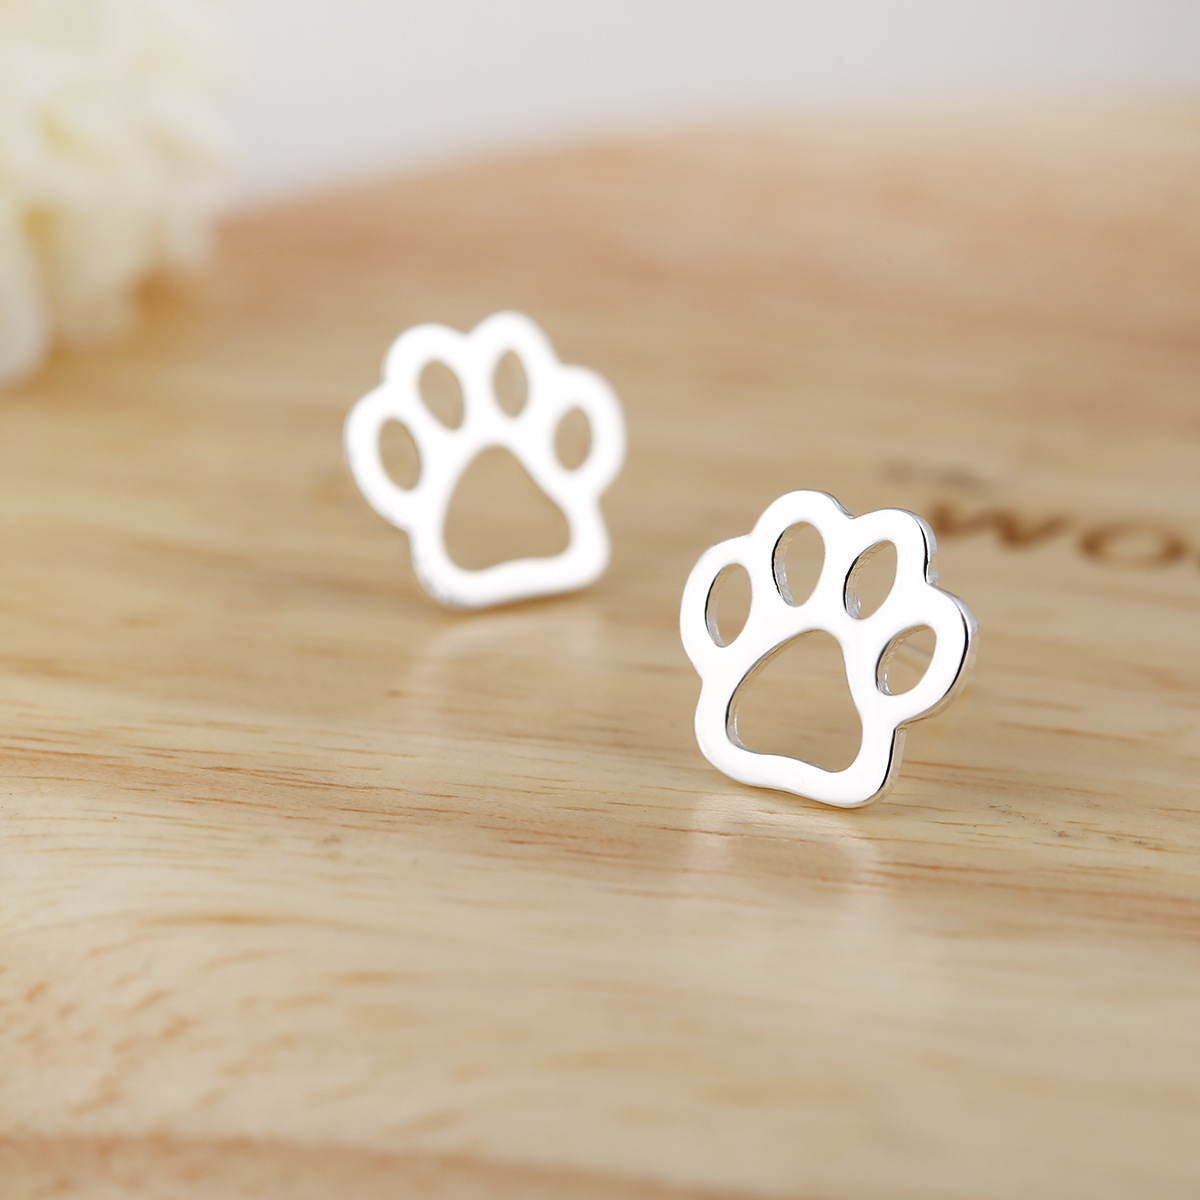 pin post dog paw cat stud earrings tiny print